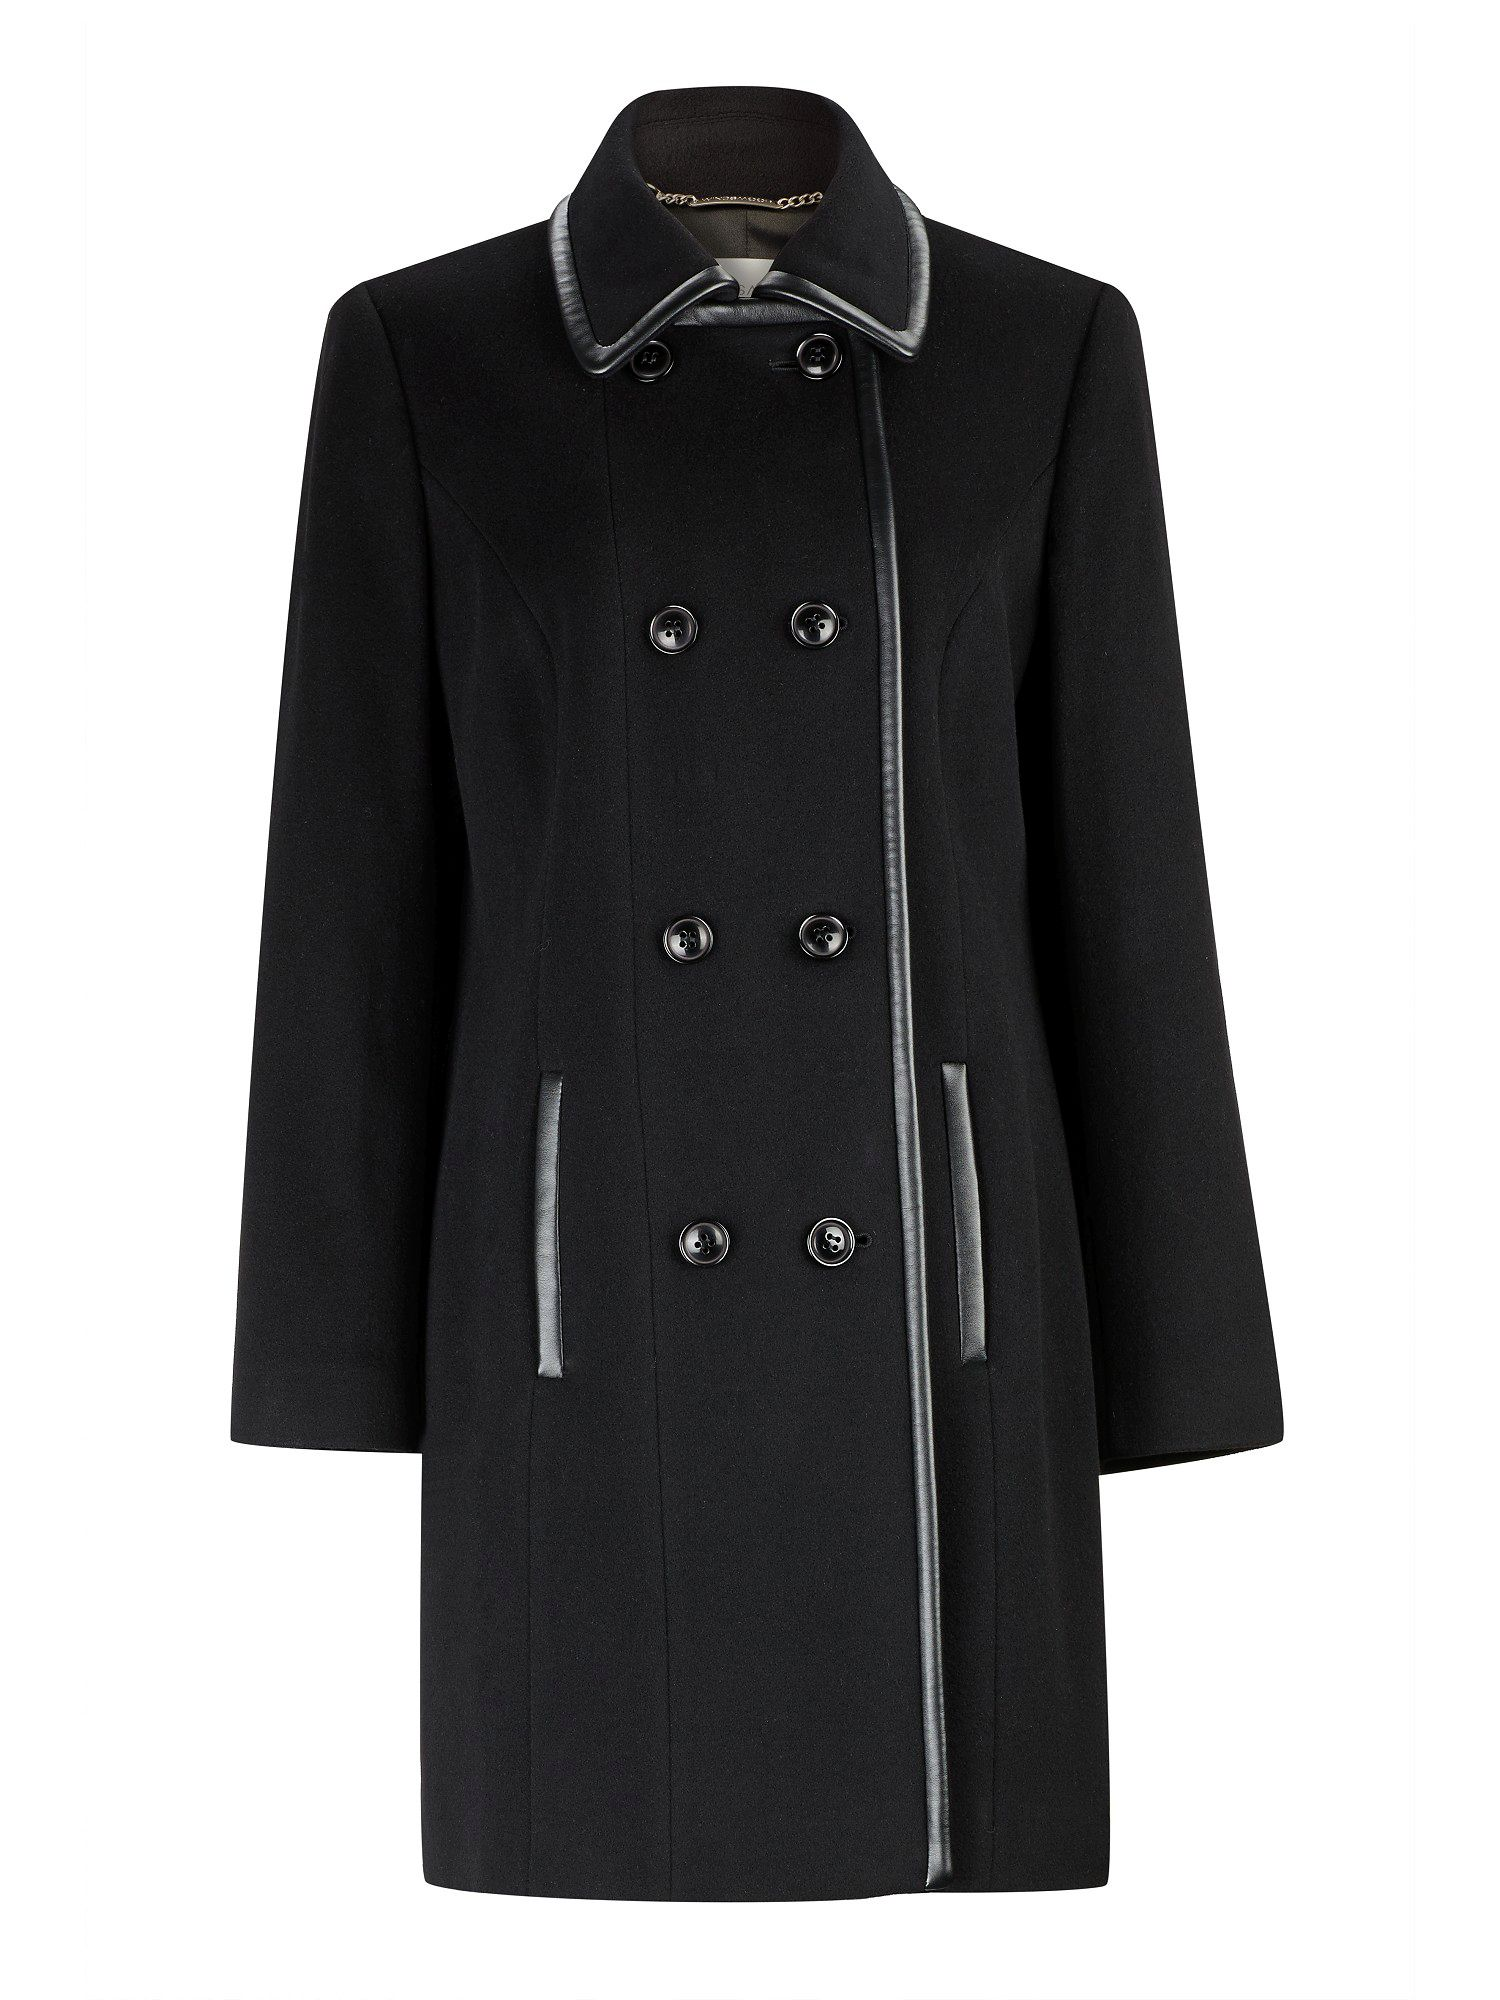 Mid-length Black Leatherette Trim Coat